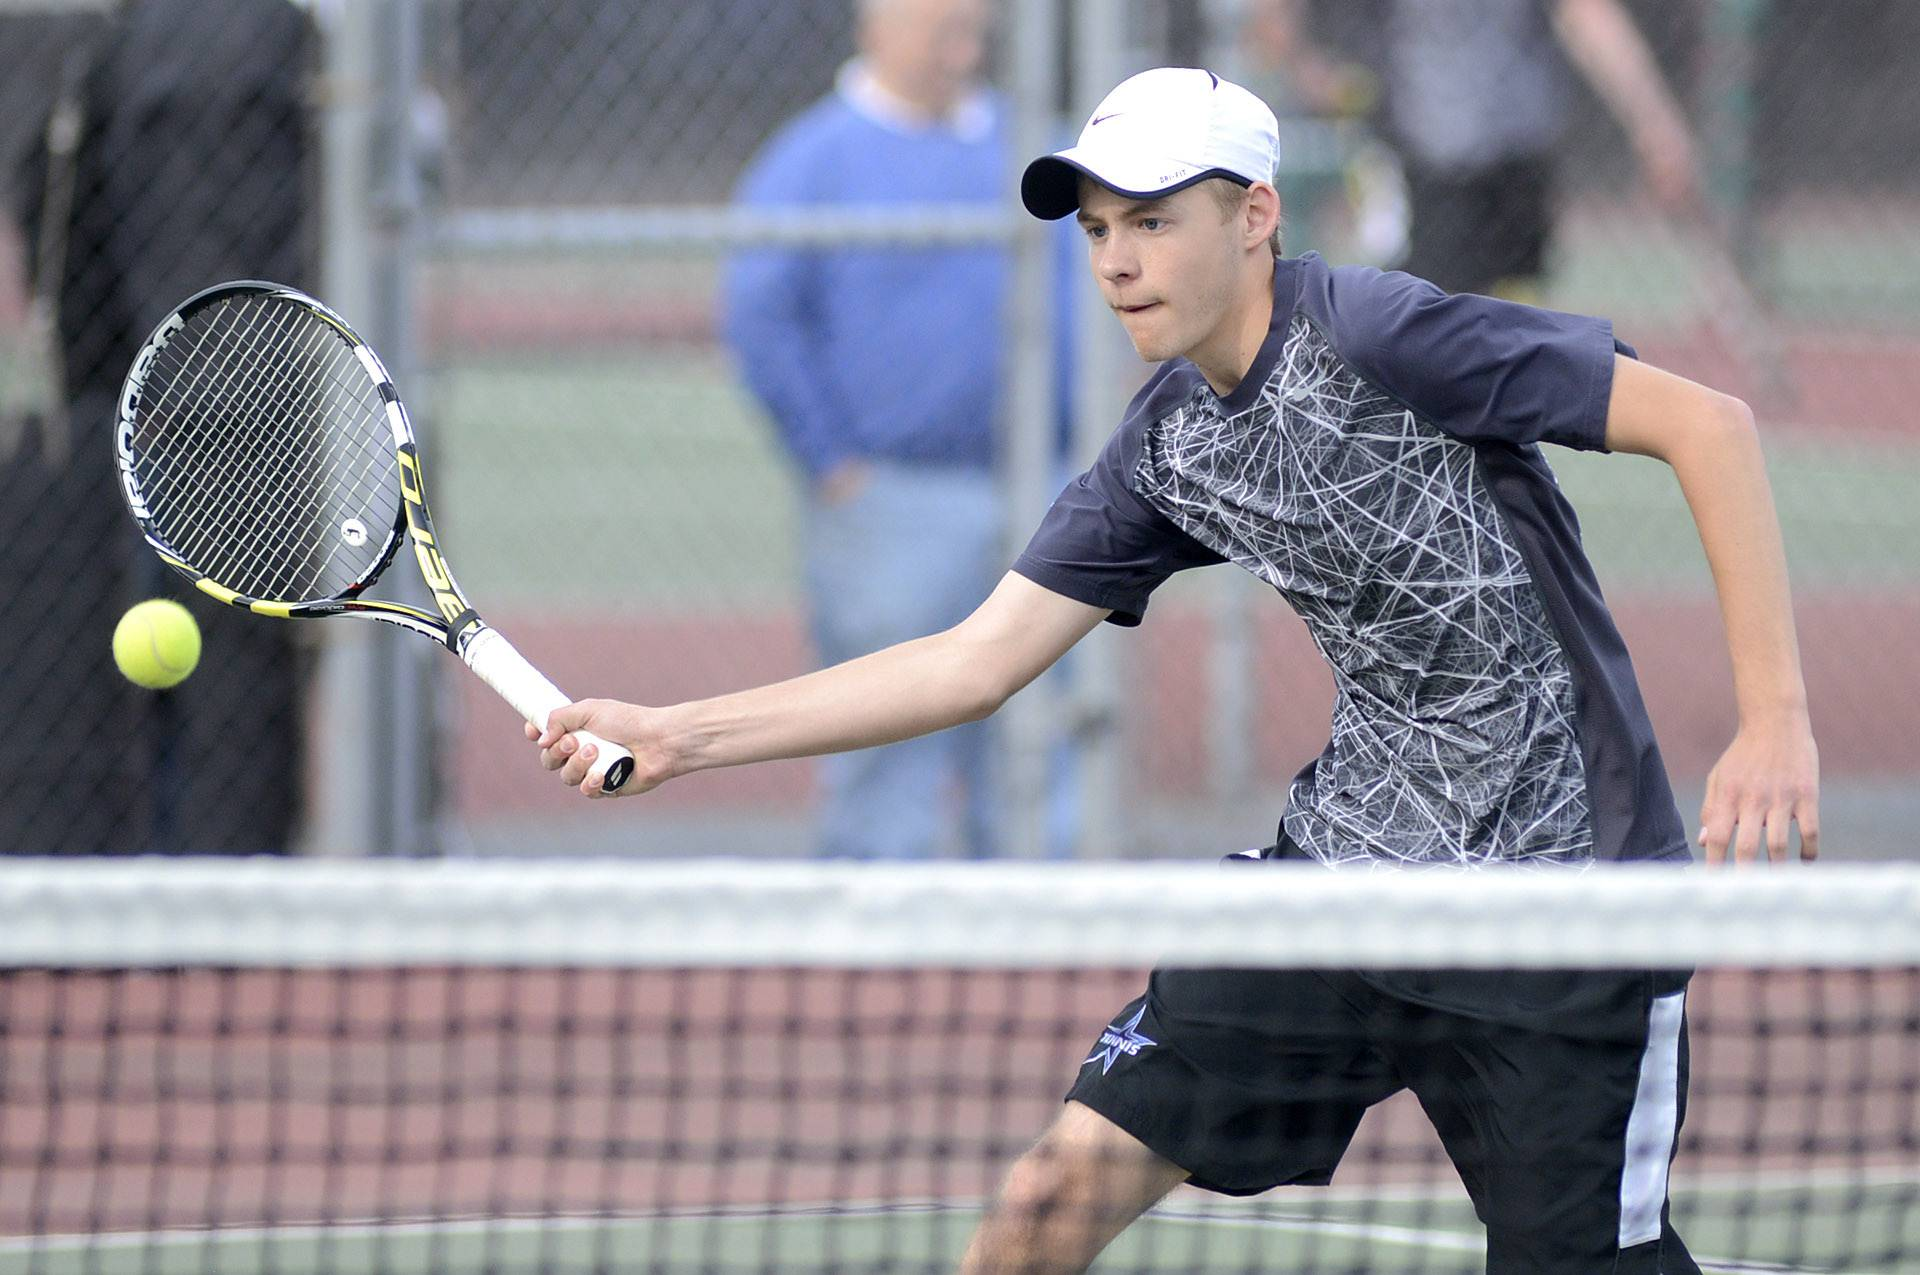 St. Charles North's Aaron Amburgey in the first doubles match vs. St. Charles East on Thursday, April 17.